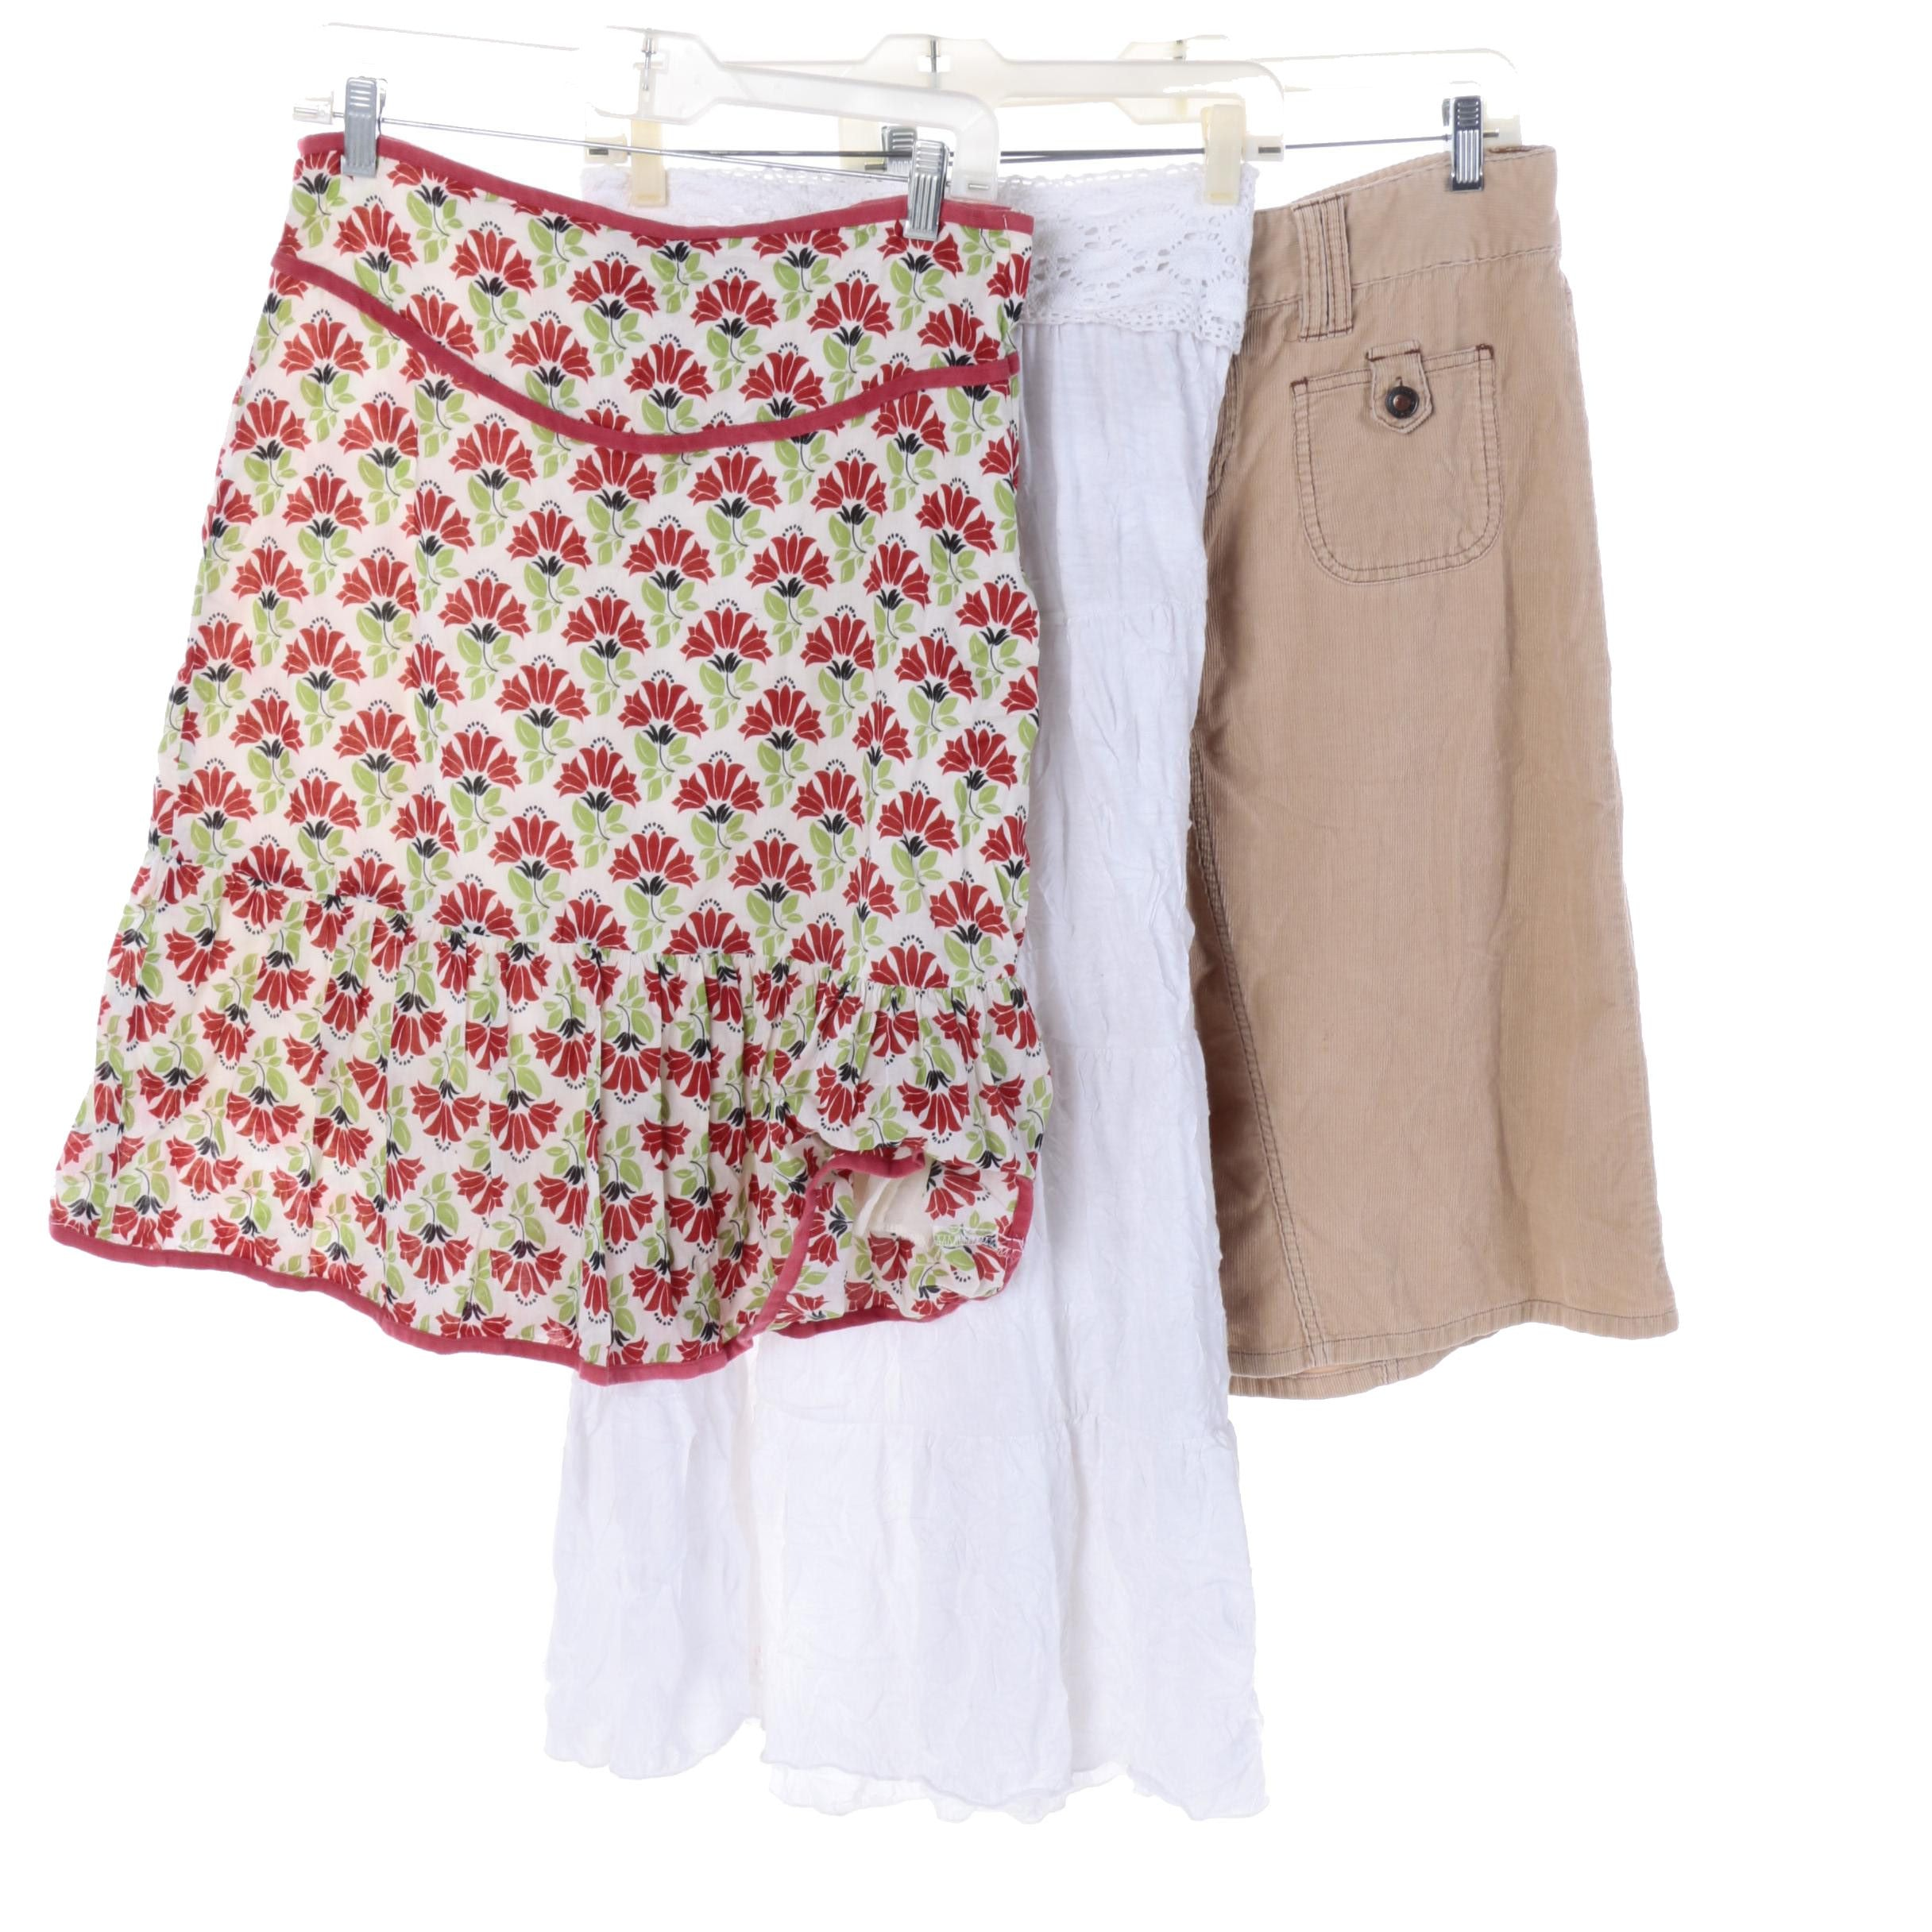 Lily White and Assorted Skirts